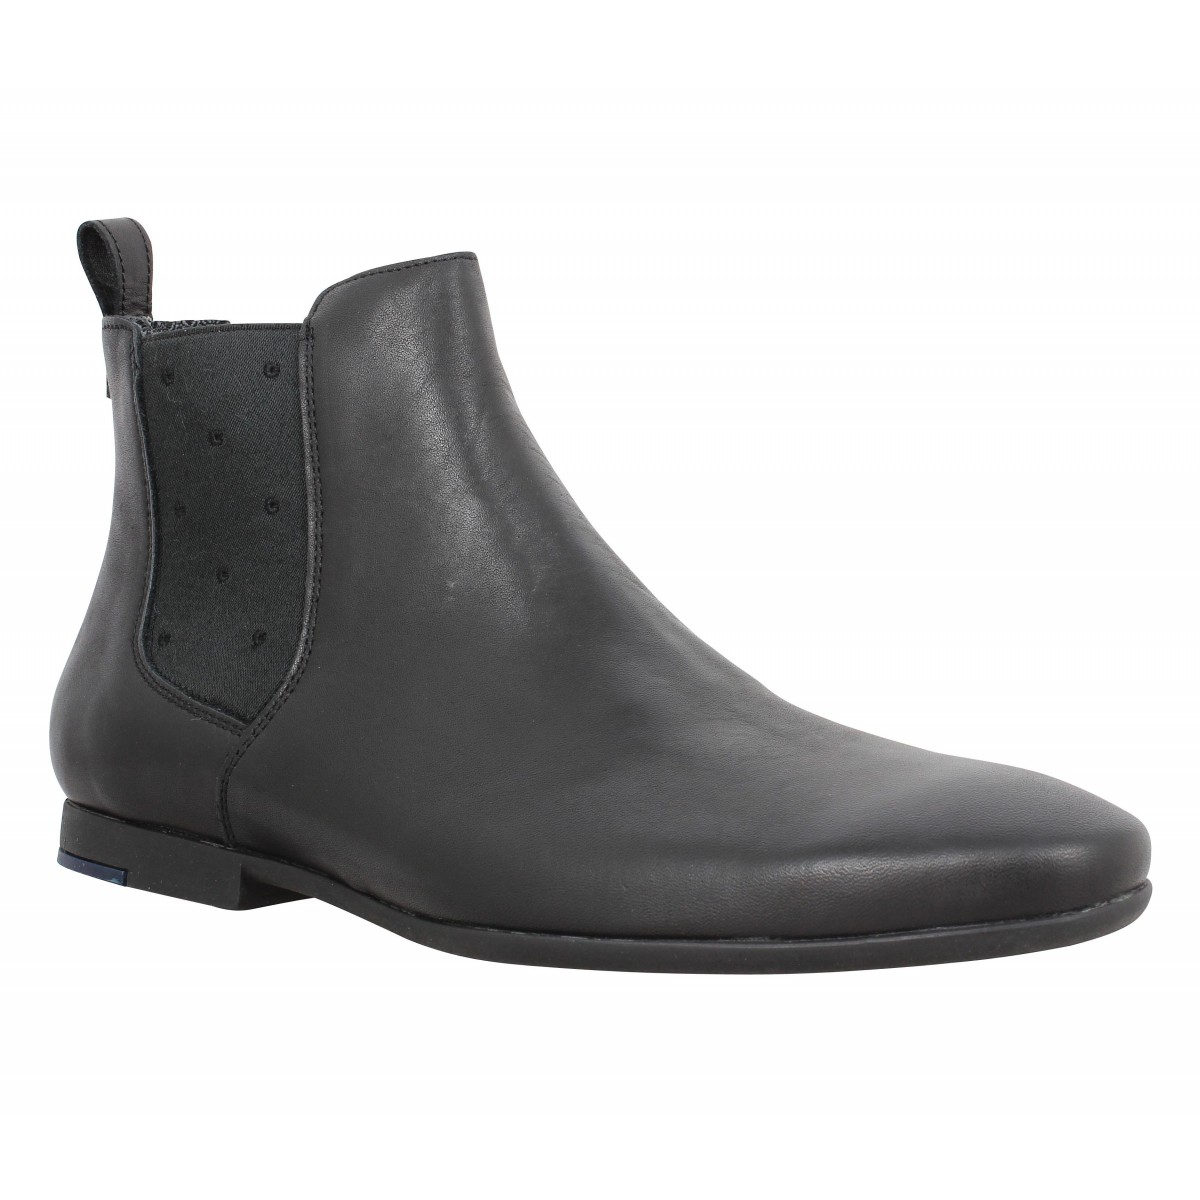 Bottines PAUL & JOE Party cuir Homme Noir